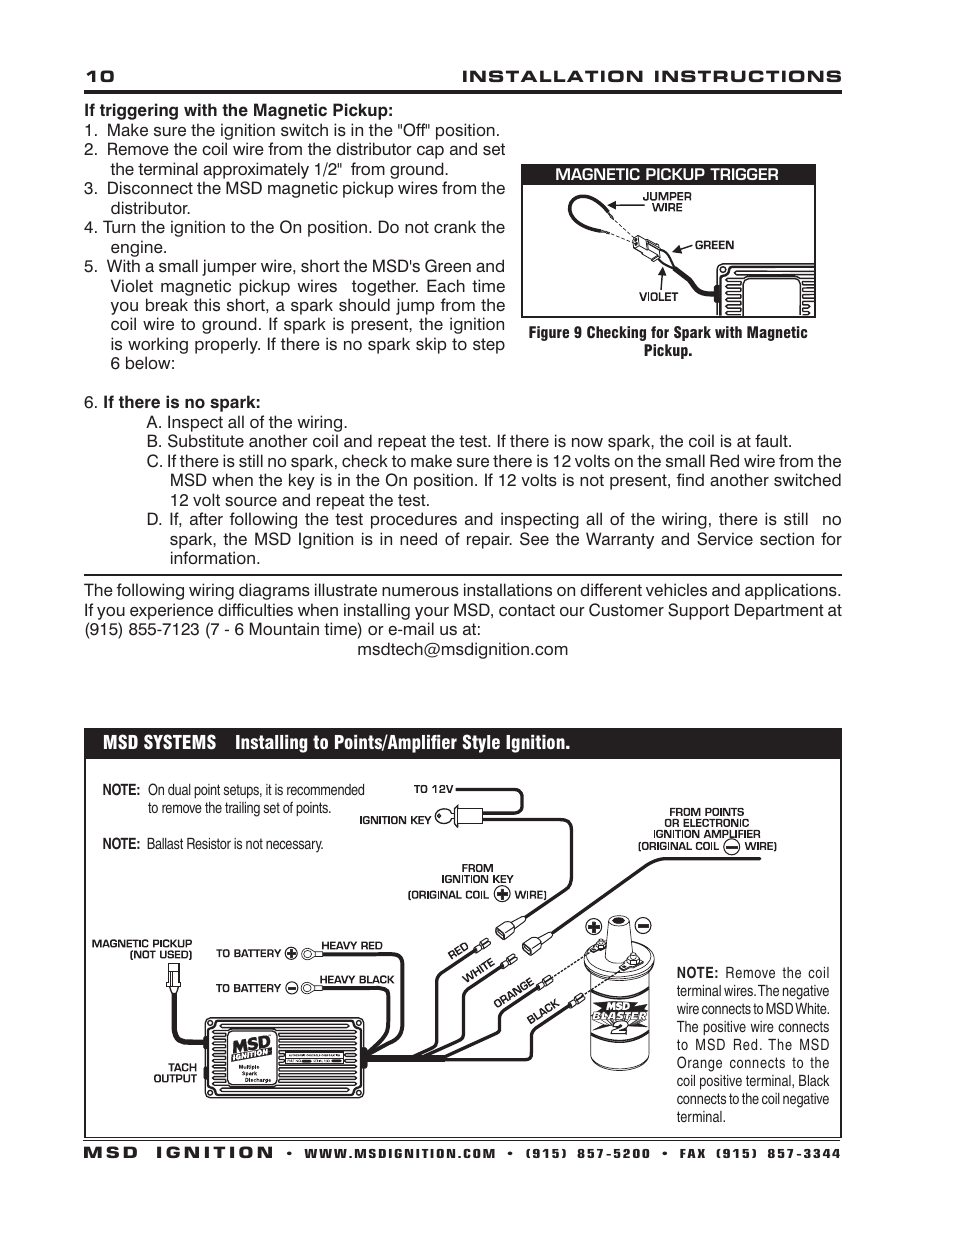 Dorable Msd 5 Wiring Diagram Embellishment - Electrical and Wiring ...